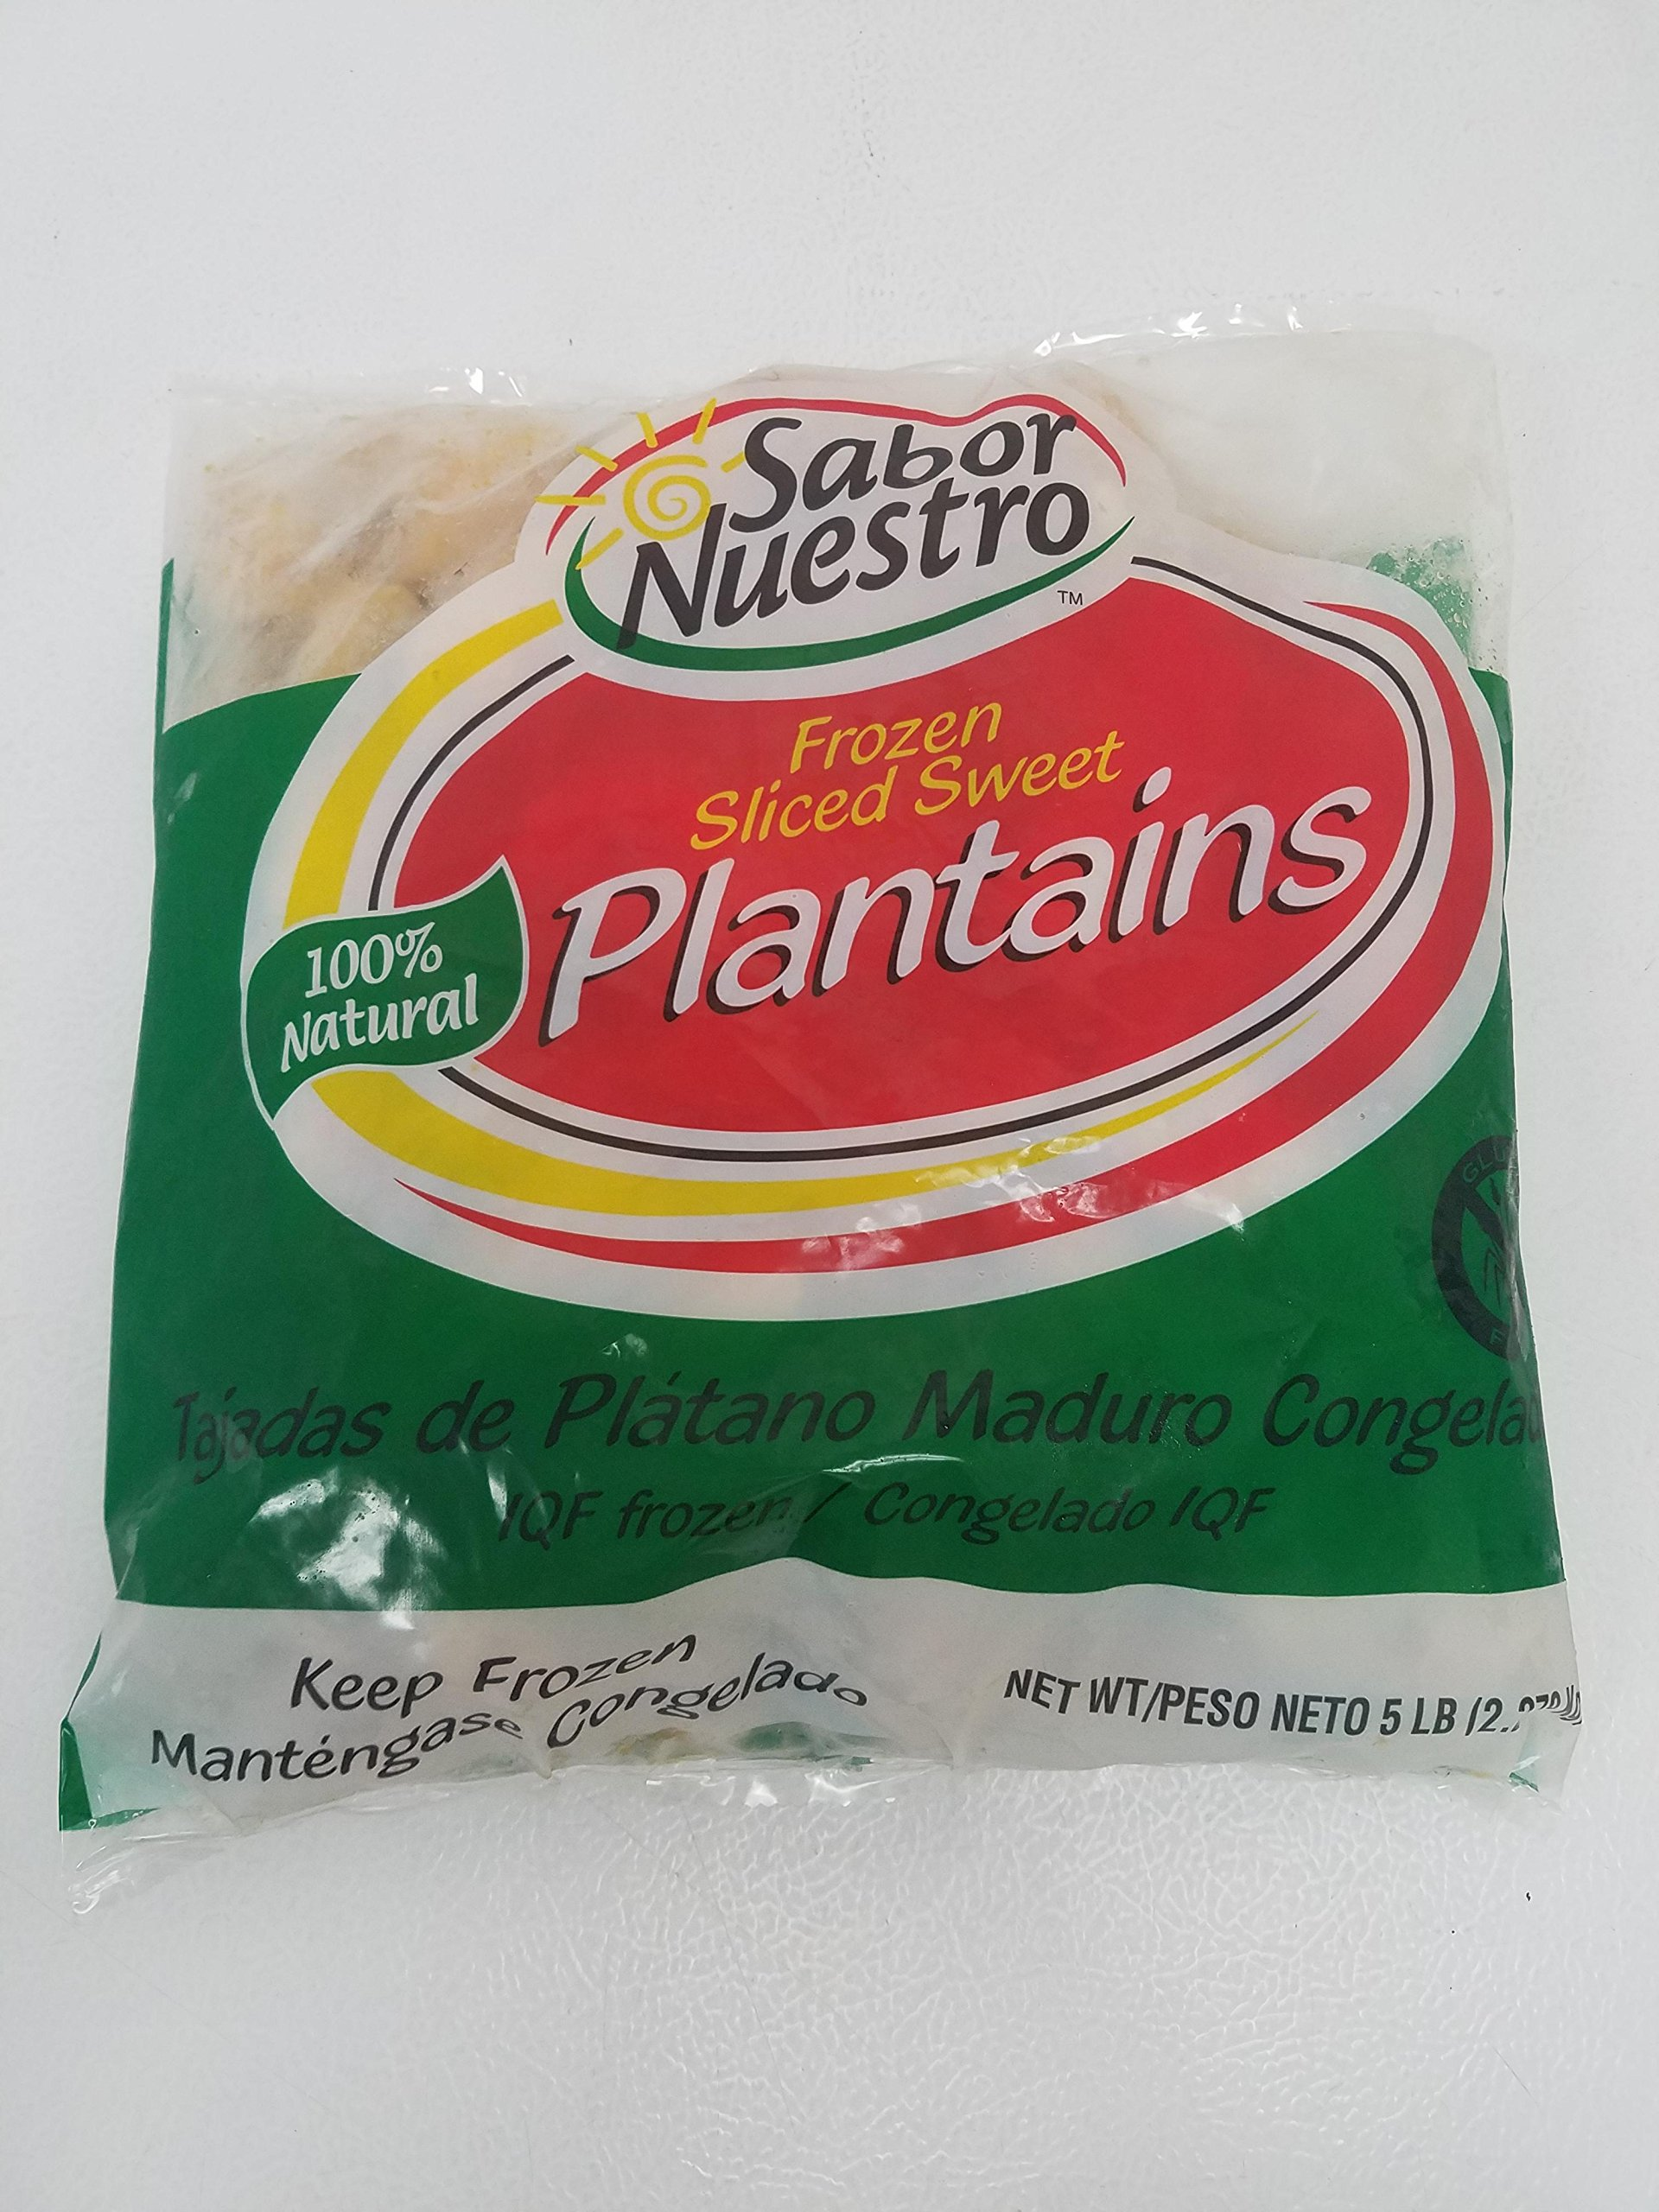 Frozen Sliced Sweet Plantains by Sabor Nuestro